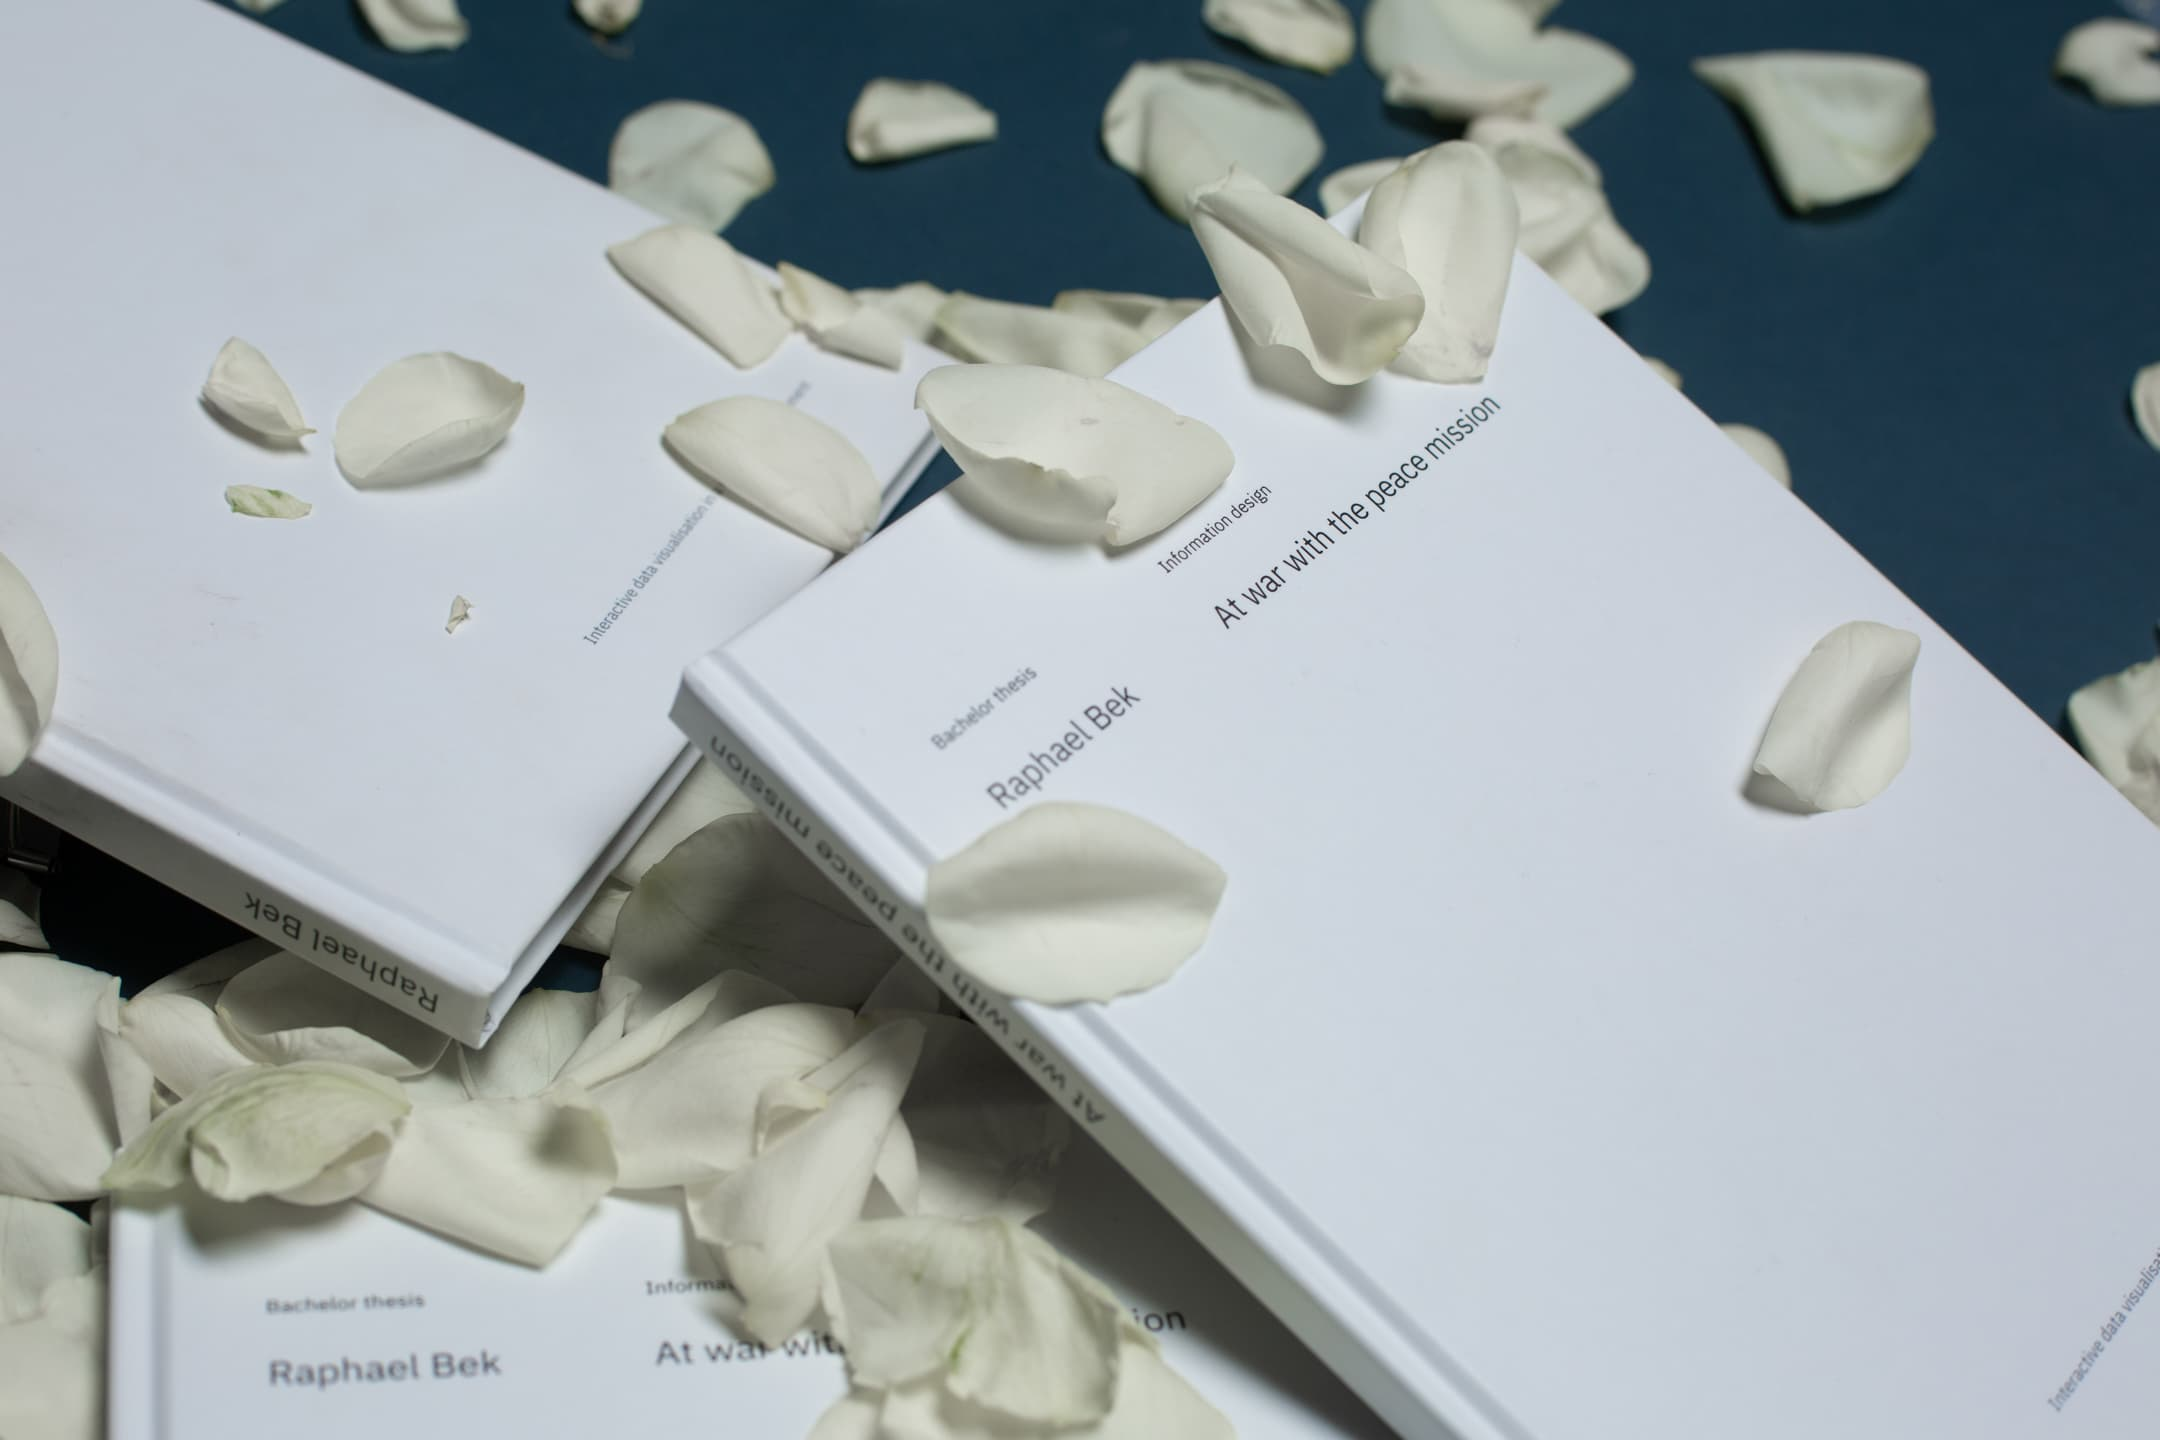 The thesis with aminimalistic cover, laid on white rose petals